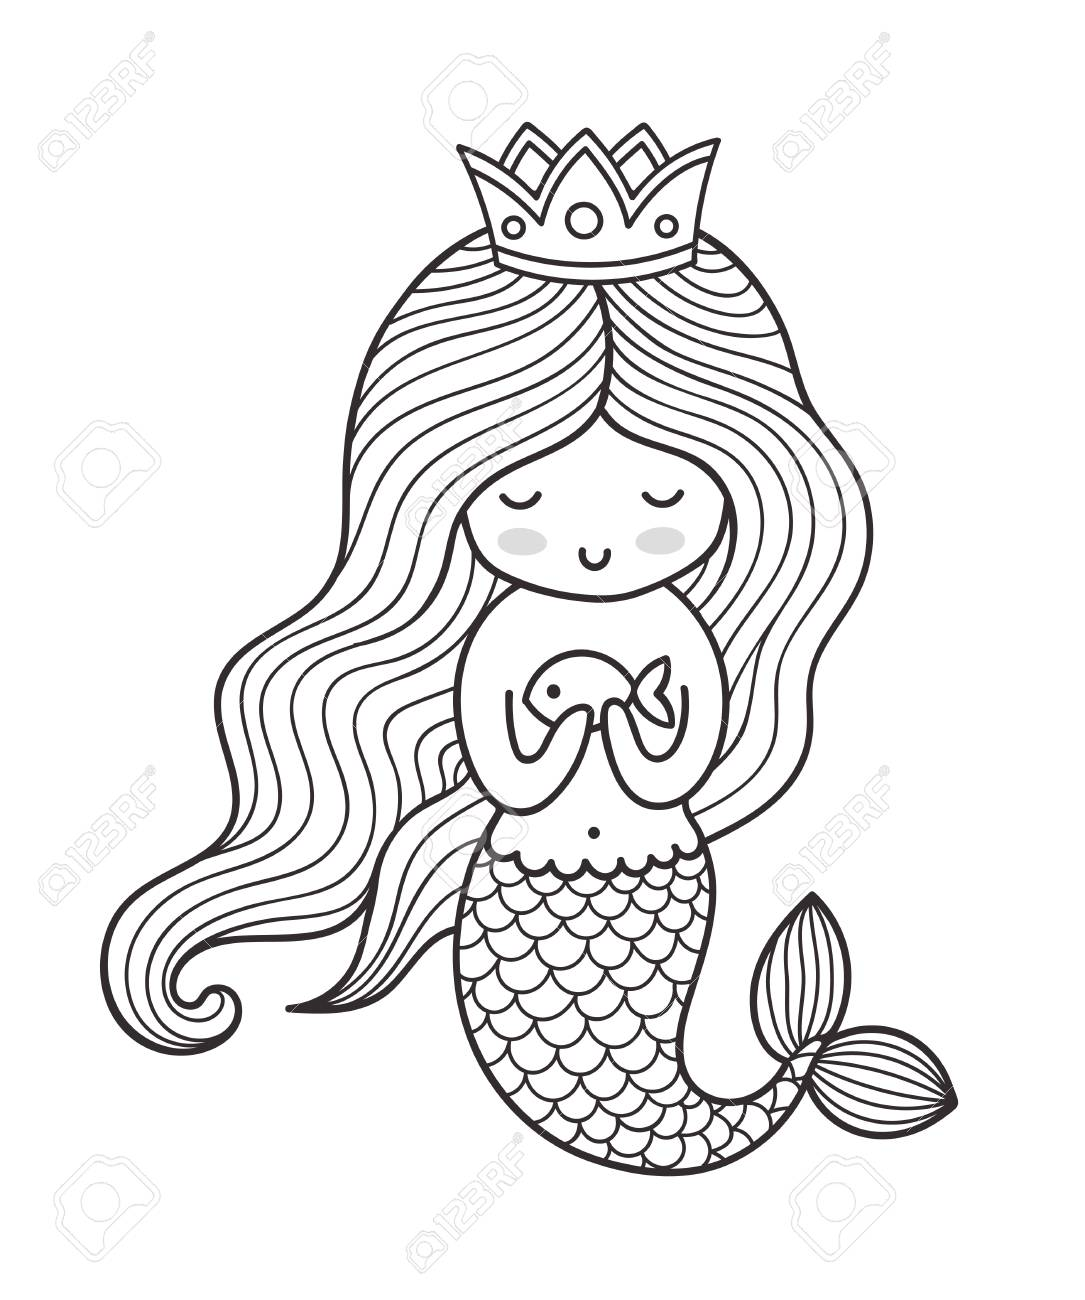 mermaid with long curly